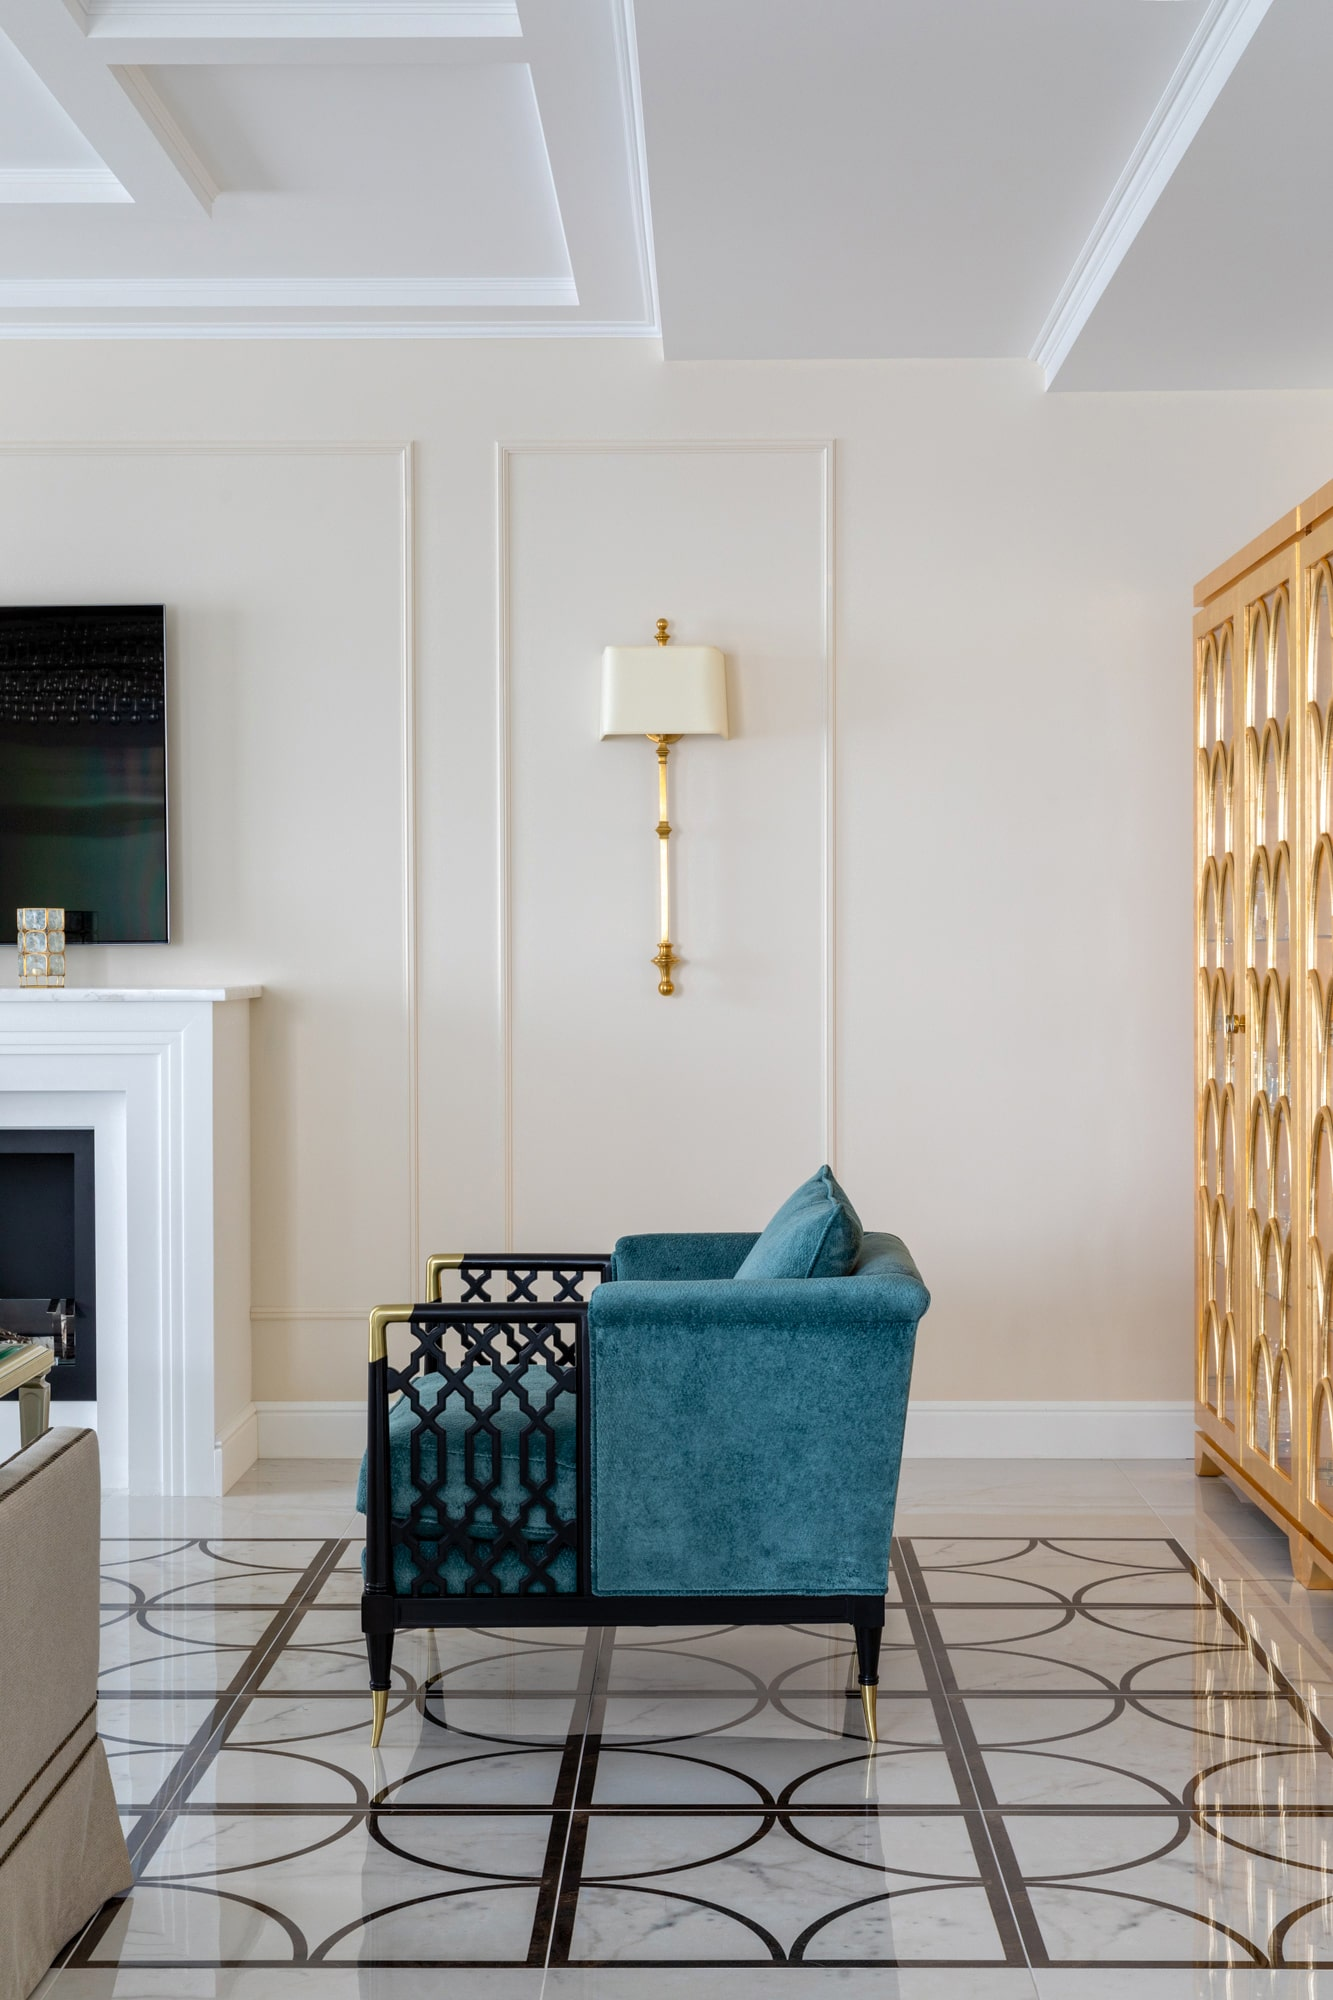 Living room interior detail photo: teal velvet armchair; marble looking tiles, gold cabinet